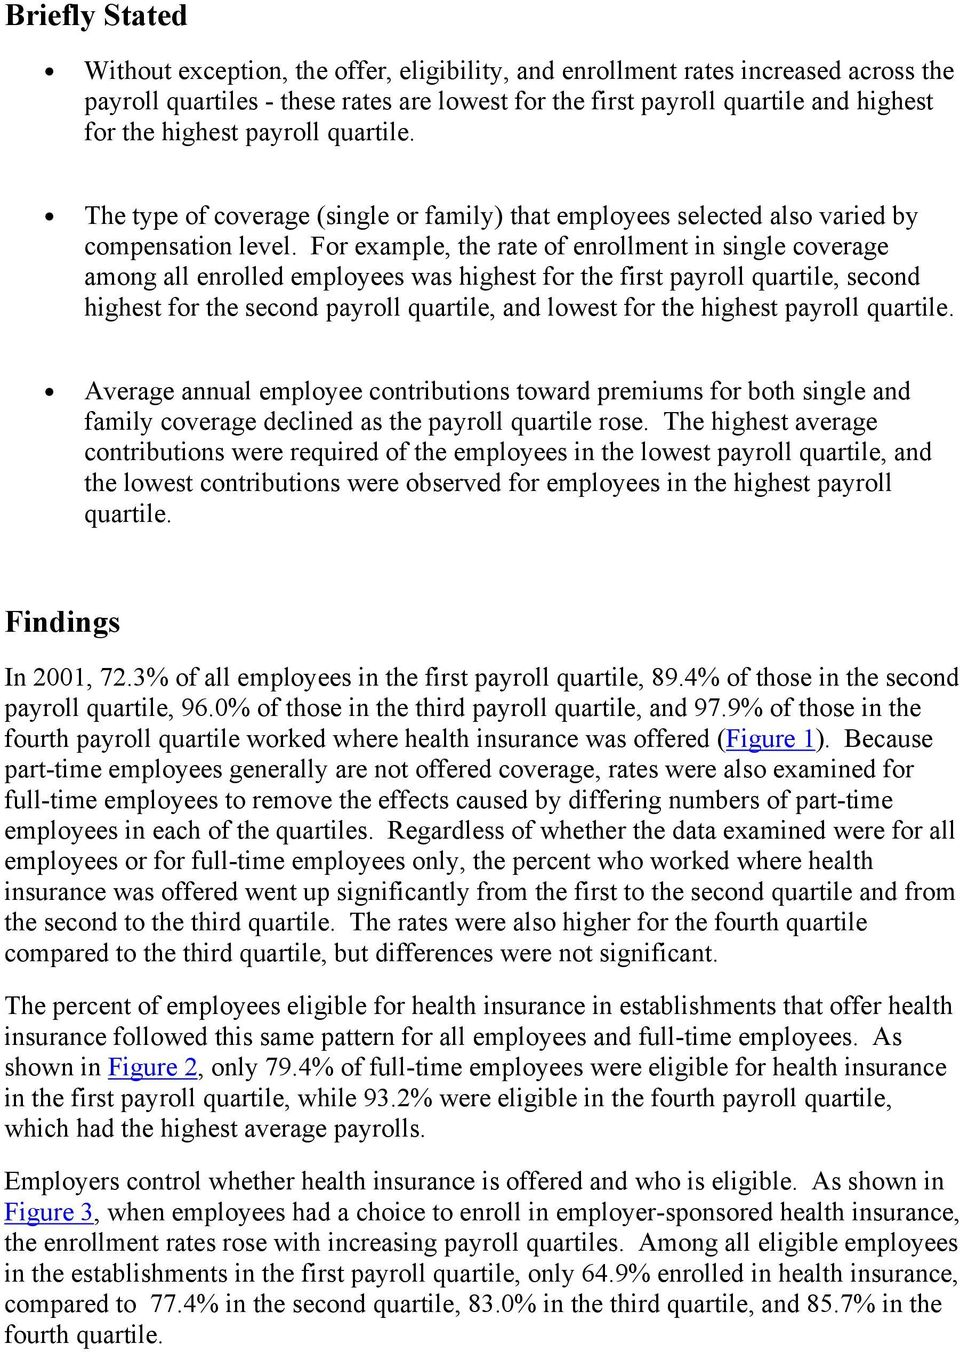 For example, the rate of enrollment in single coverage among all enrolled employees was highest for the first payroll quartile, second highest for the second payroll quartile, and lowest for the